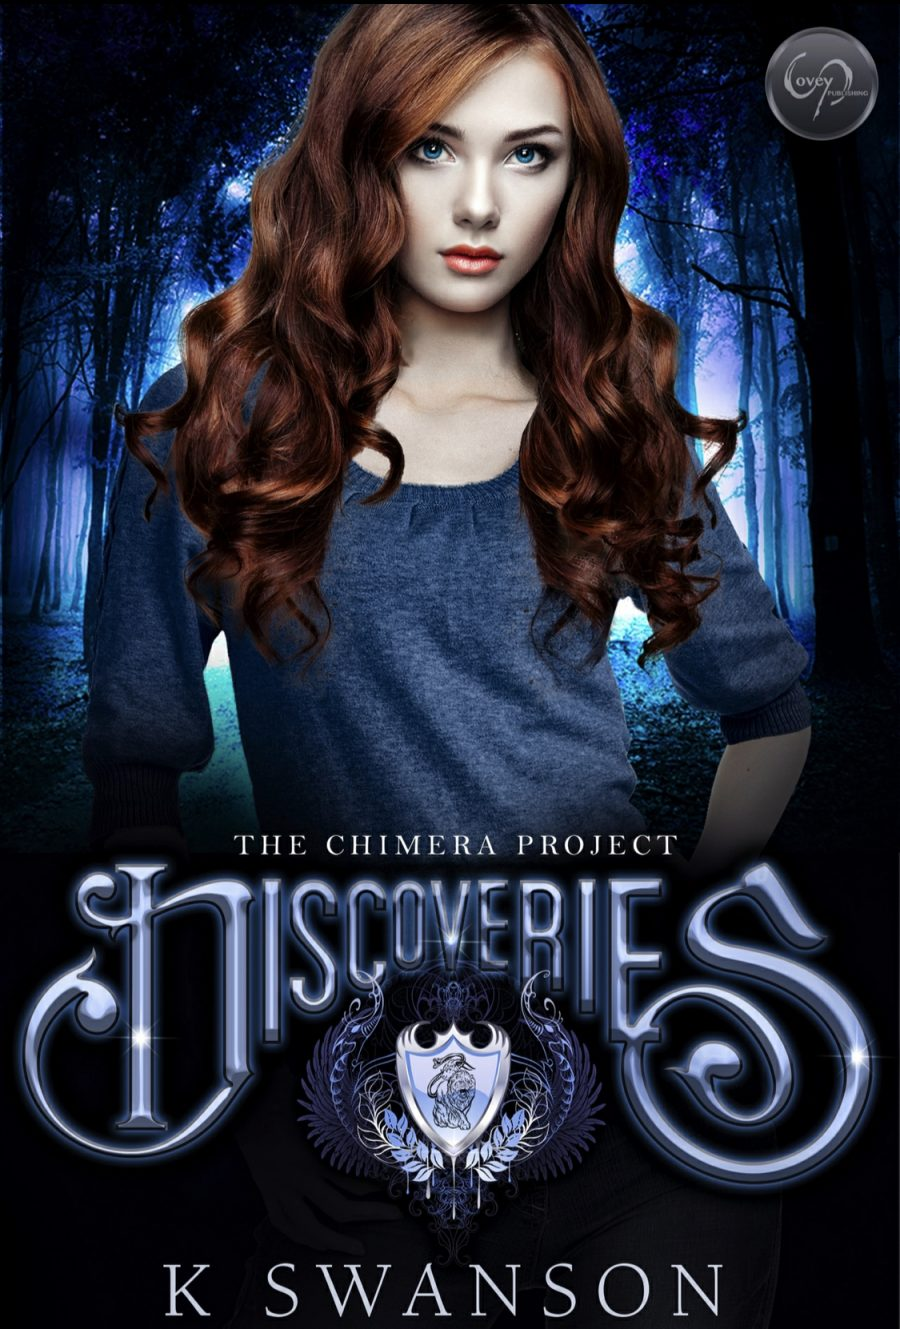 Discoveries *The Chimera Project - Book 1* by K Swanson - A Book Review #BookReview #Review #PNR #RH #WhyChoose #ReverseHarem #YA #ComingOfAge